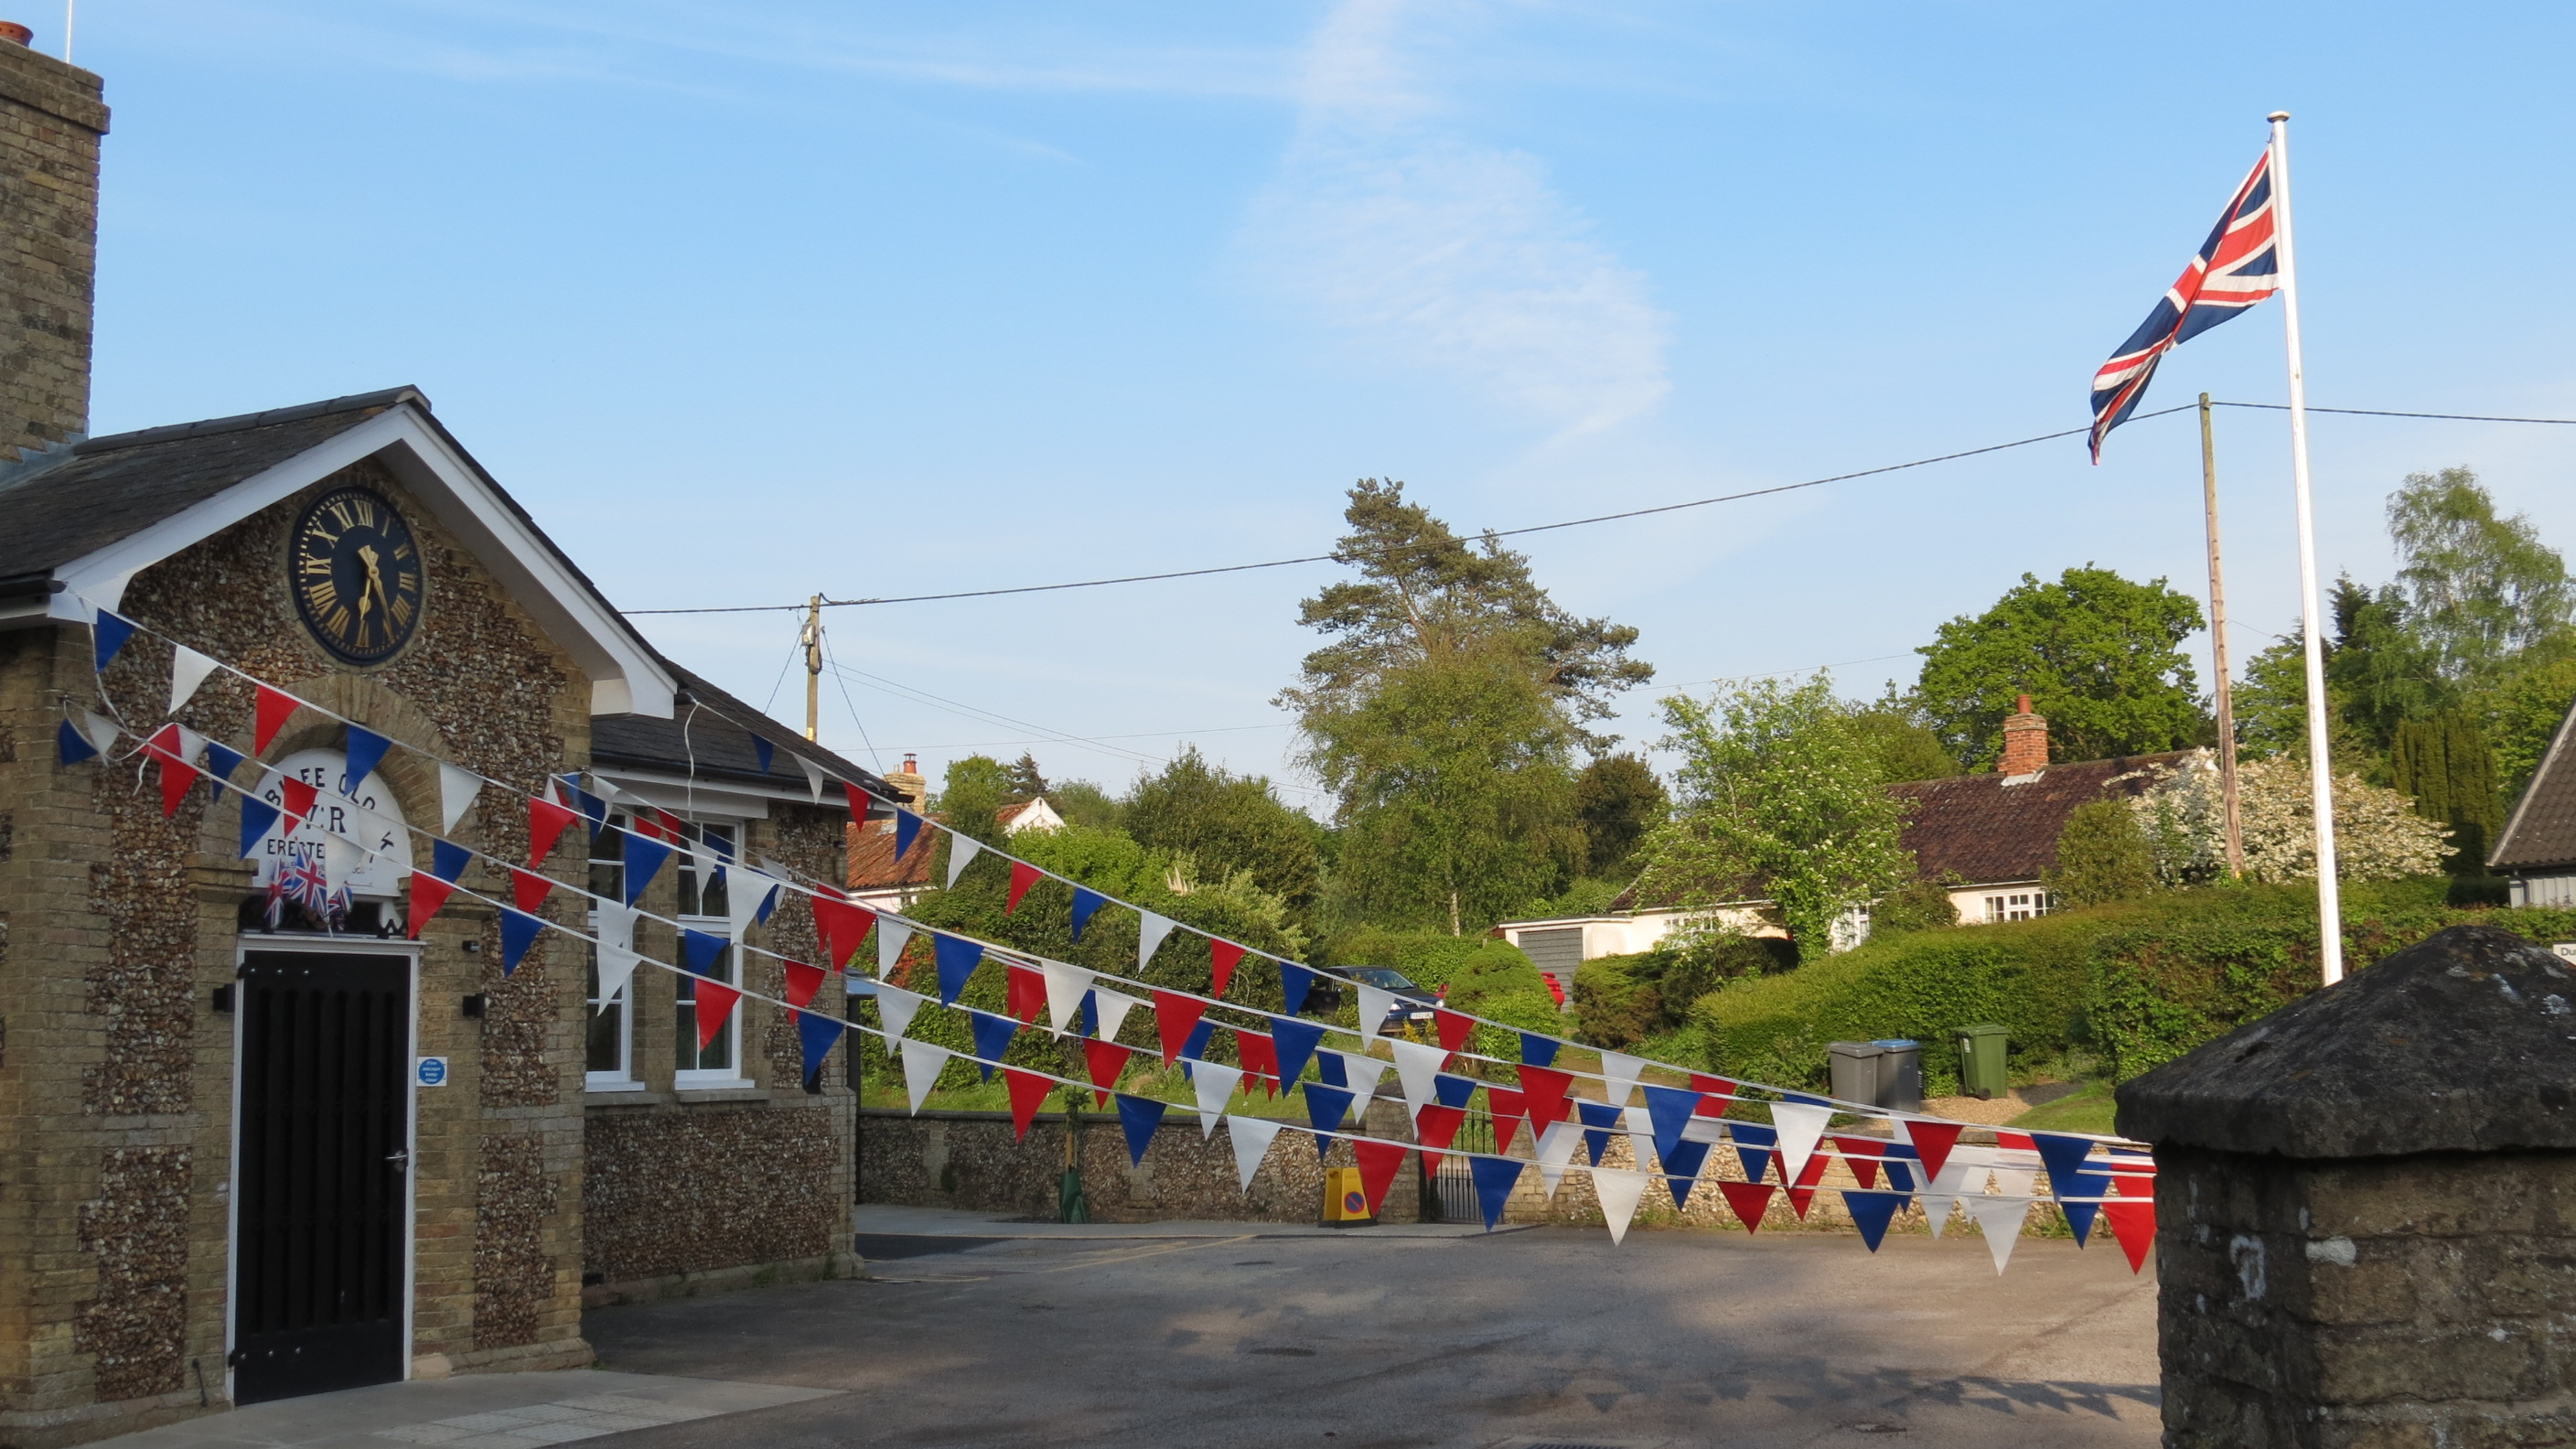 Westleton Village Hall from Darsham Road showing red, white and blue bunting and the flag pole with Union Flag flying.